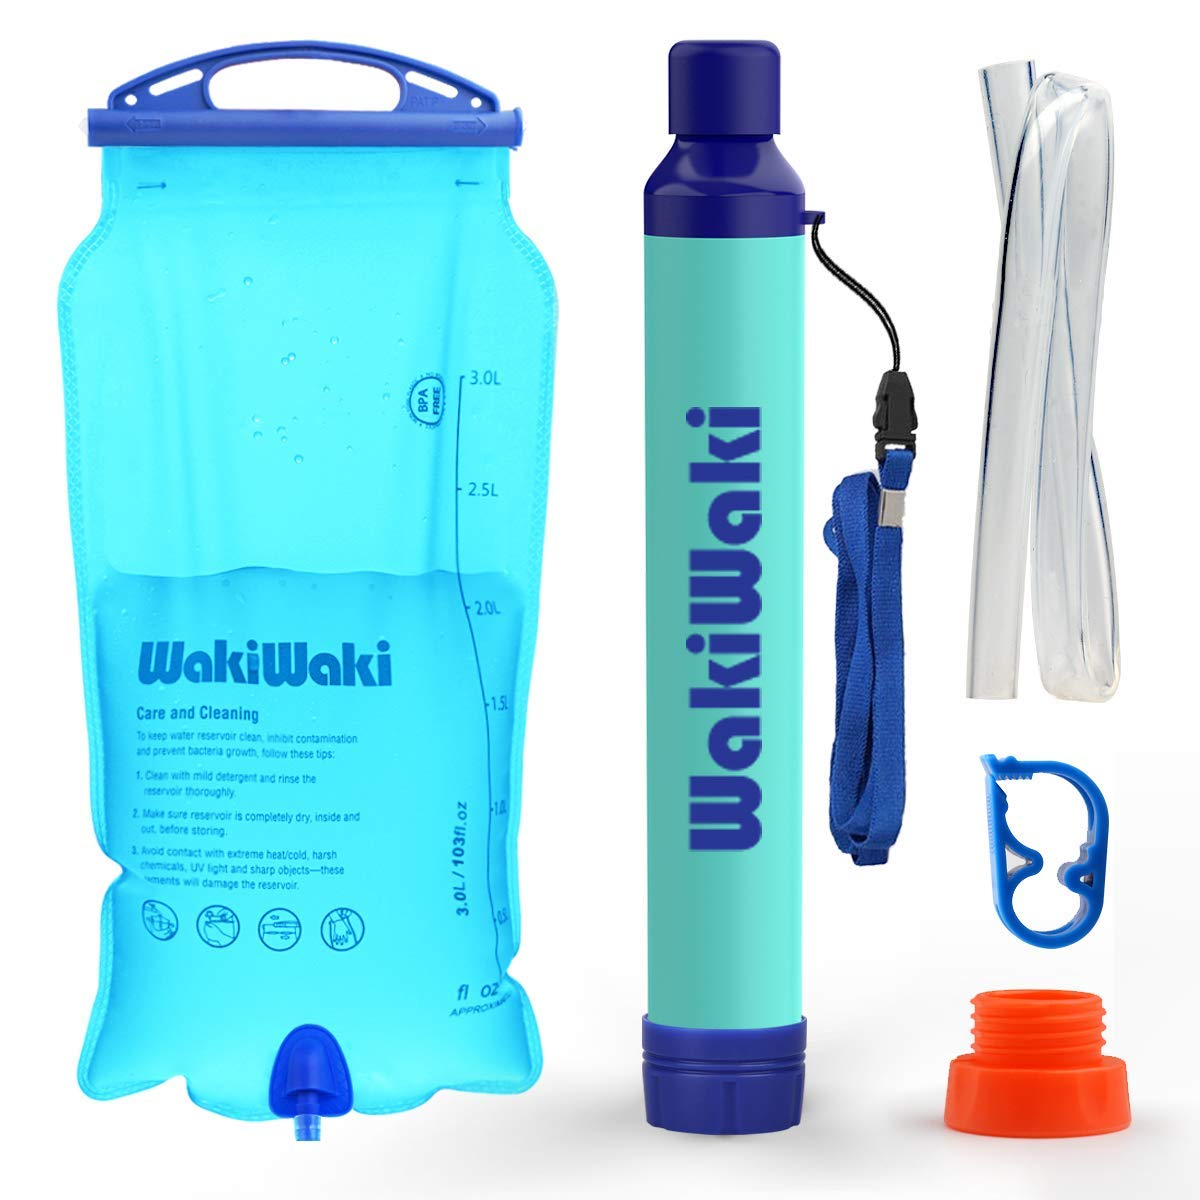 Membrane Solutions Portable Gravity Powered Water Purifier,High-Volume Gravity-Fed Purifier for Camping and Emergency Preparedness,High Capacity 3L by Membrane Solutions